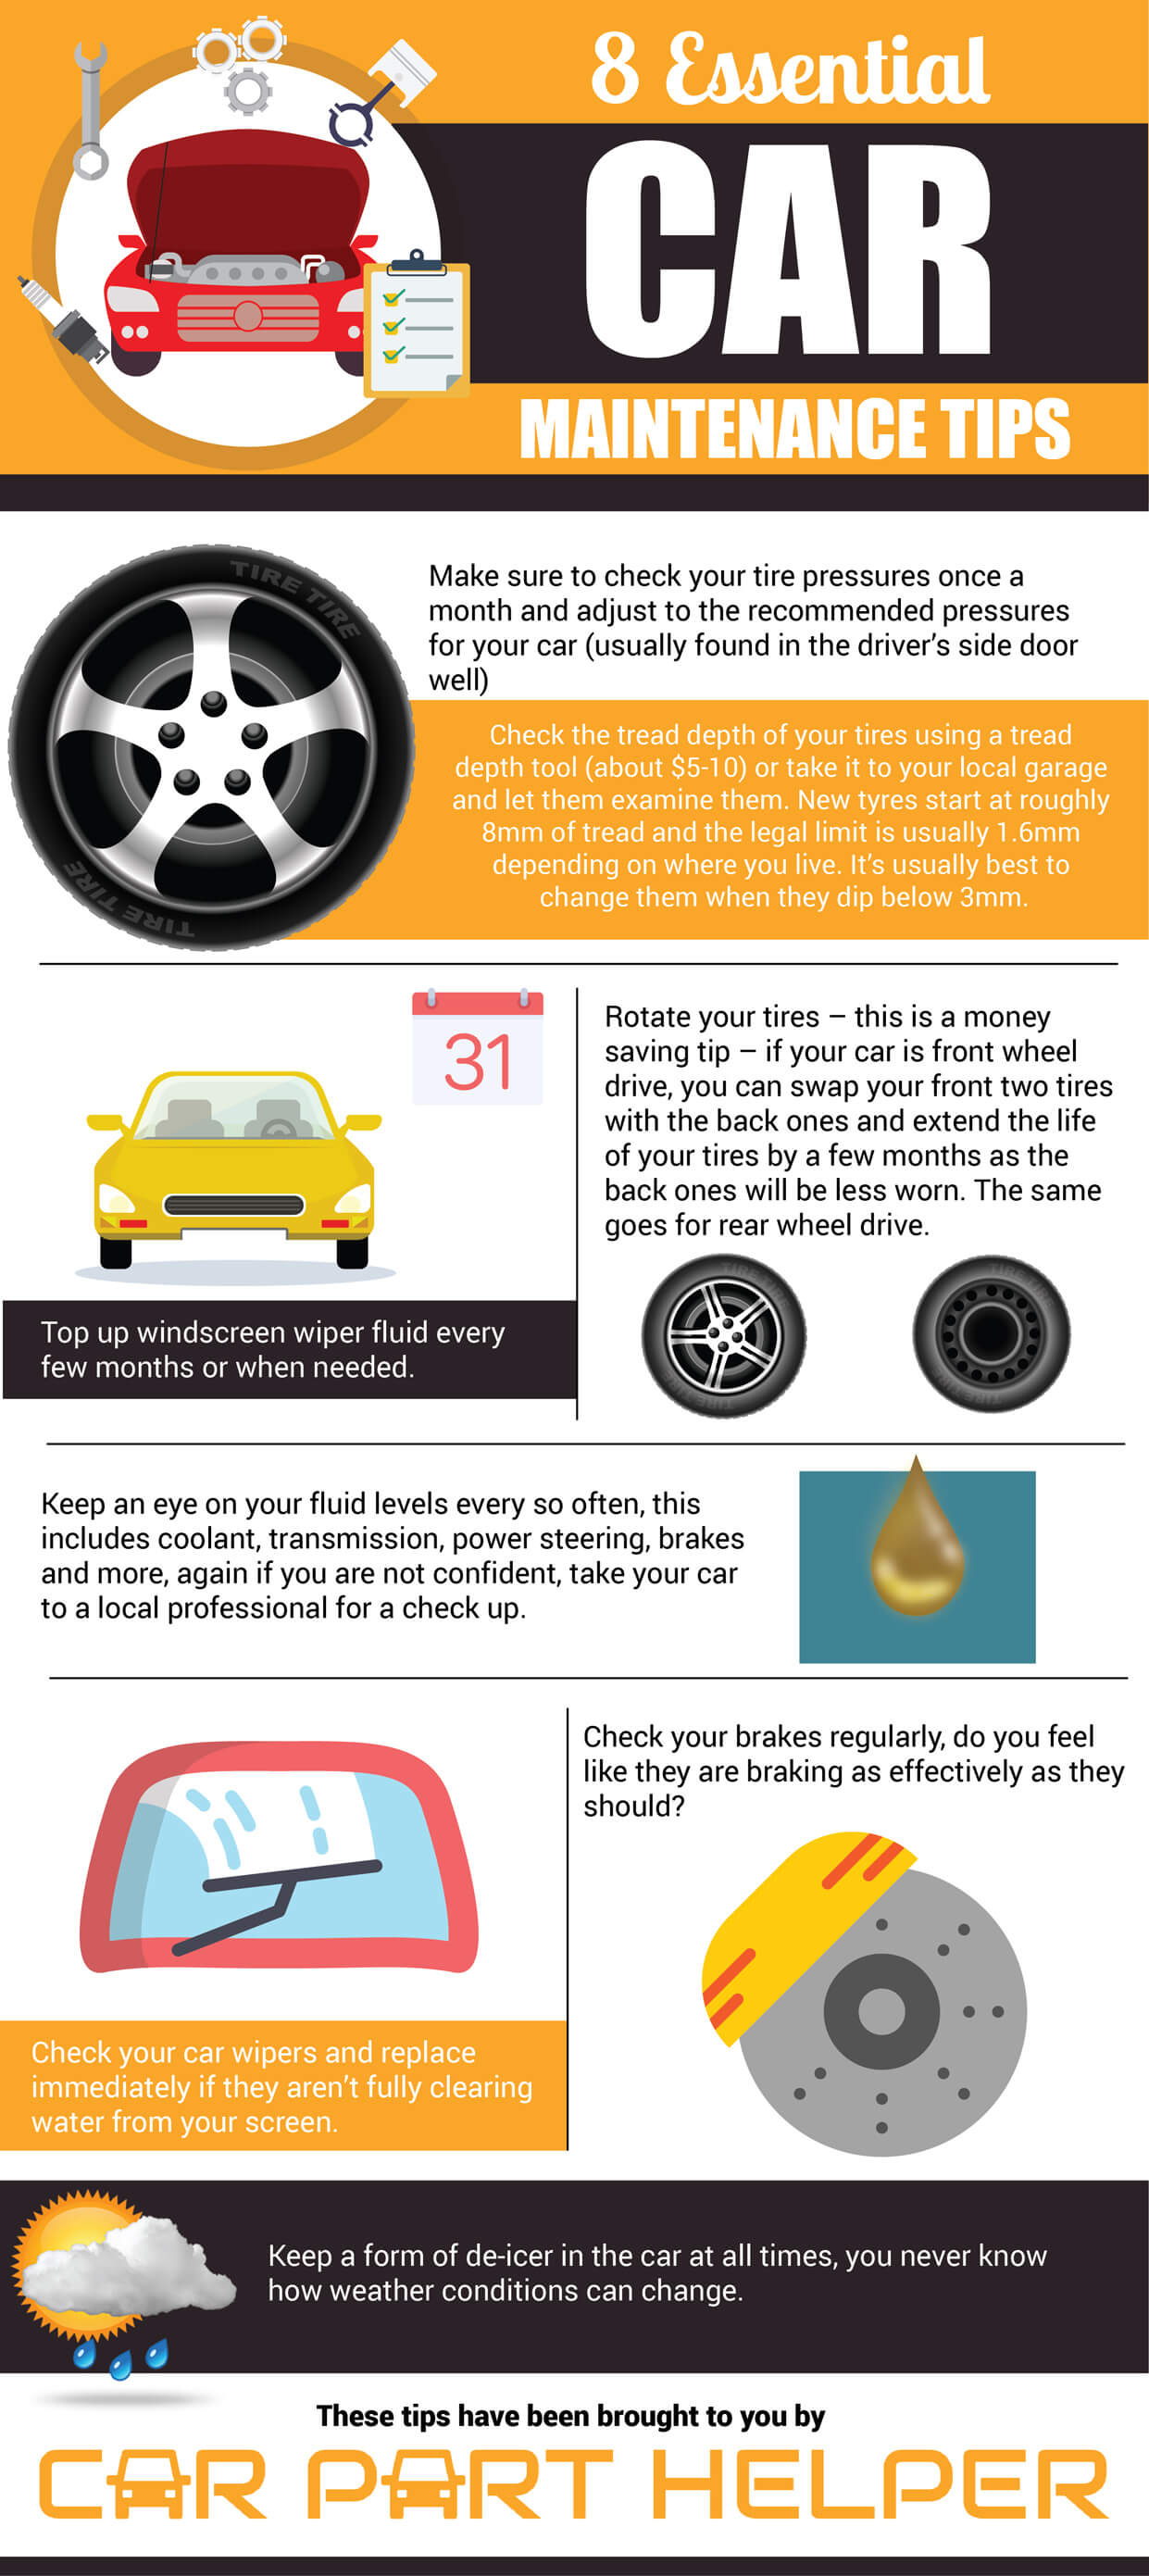 8-essential-car-maintenance-tips-infographic-plaza